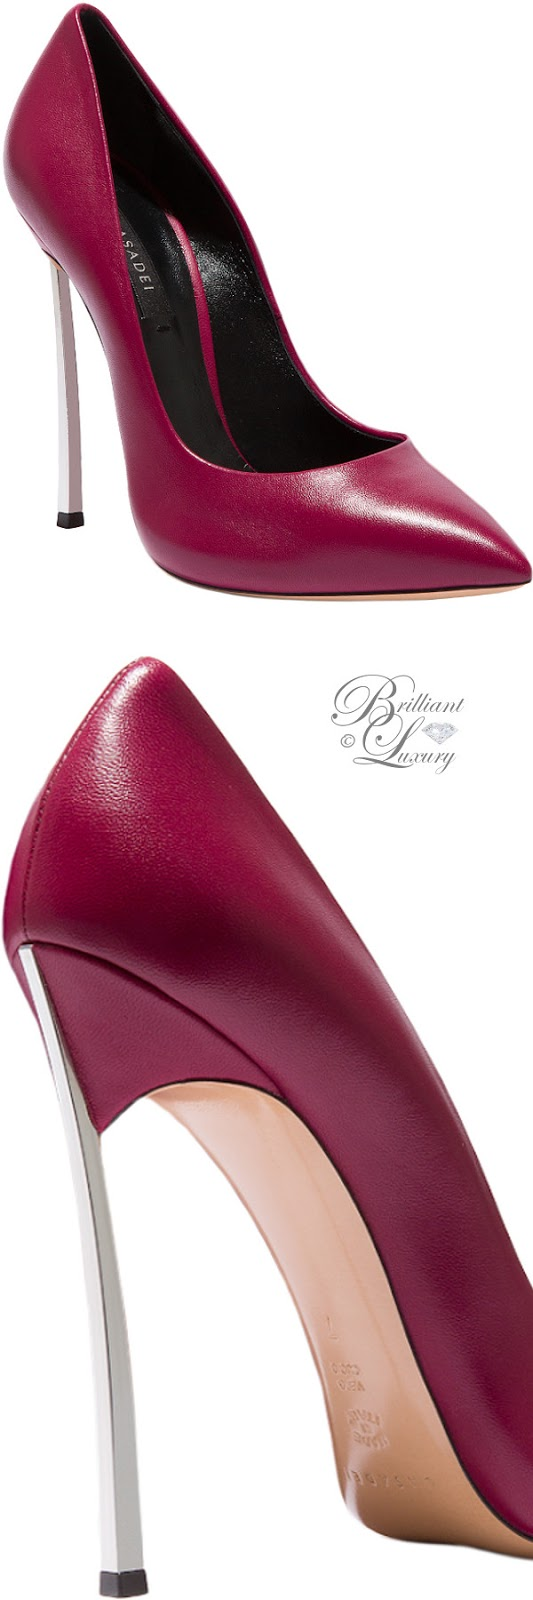 Brilliant Luxury ♦ Fall in ~ Casadei Blade pumps in burgundy